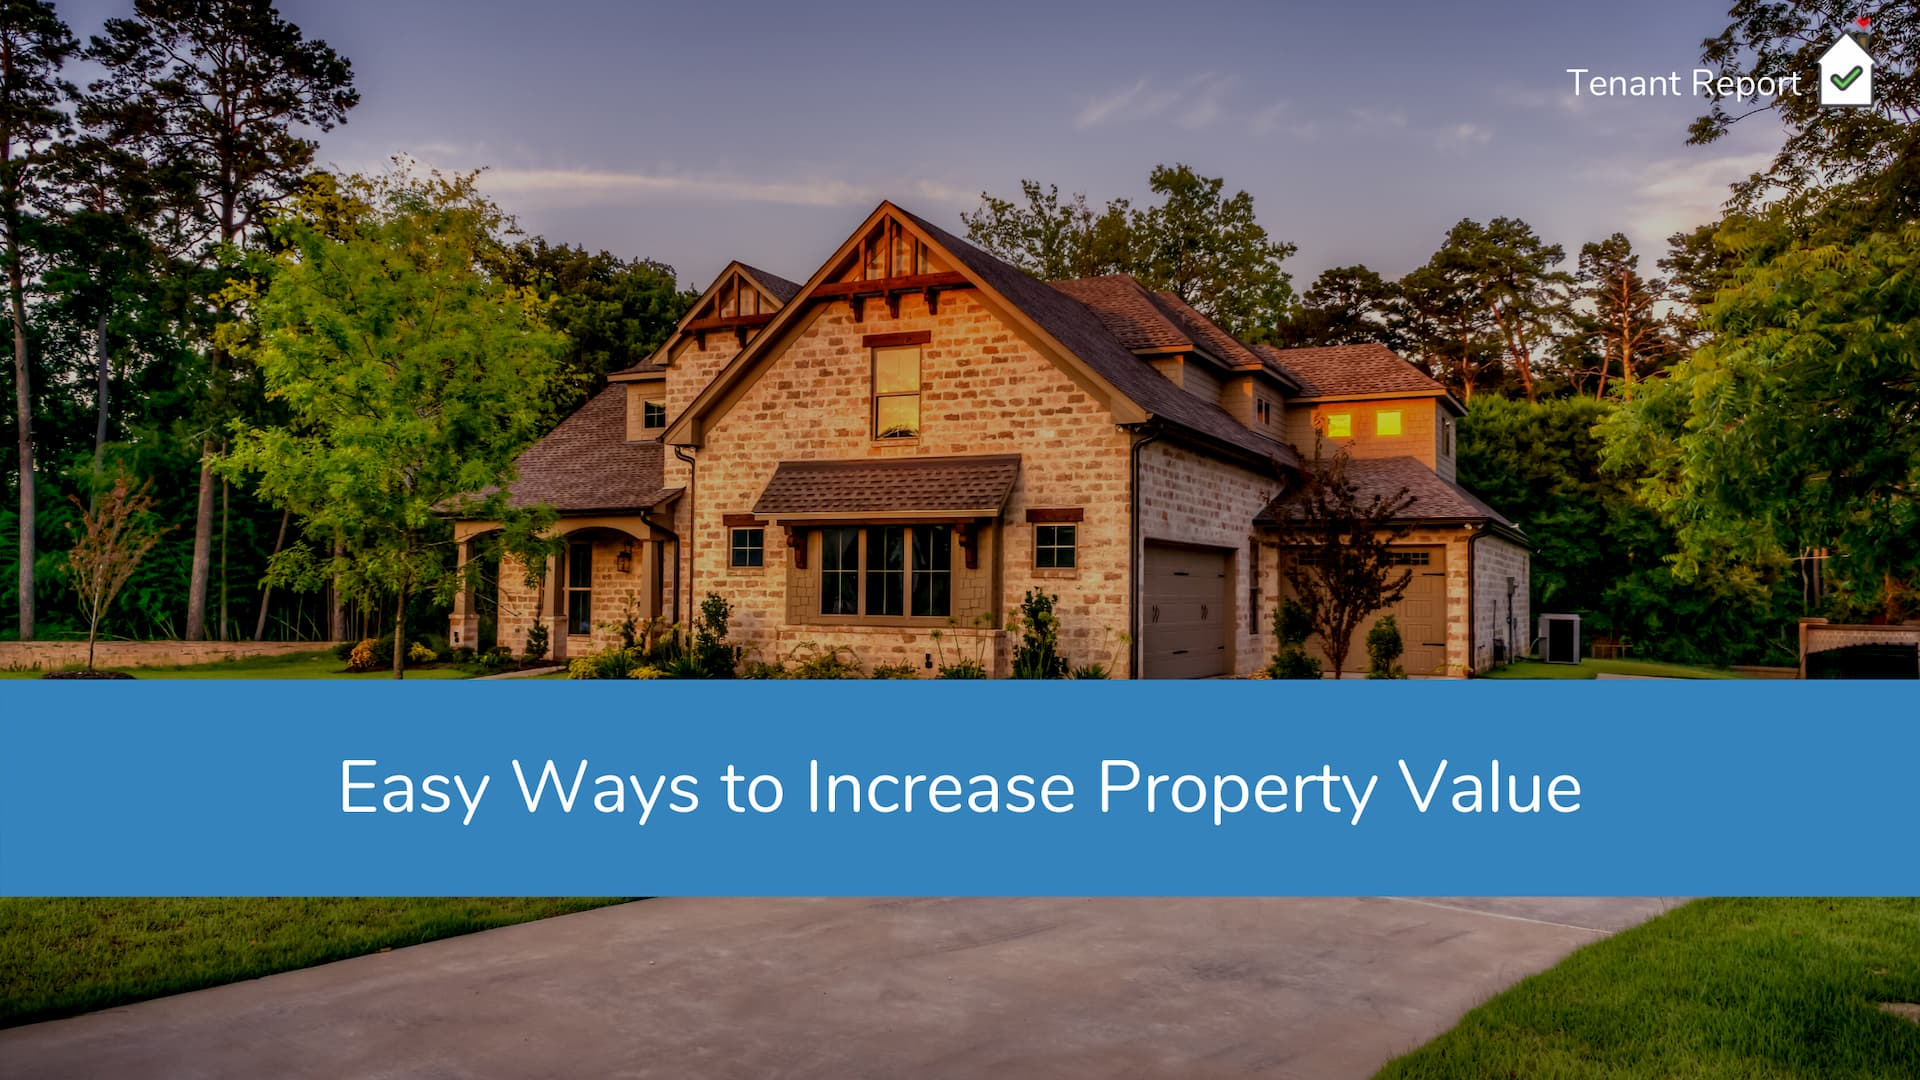 tenant-report-ways-to-increase-property-value